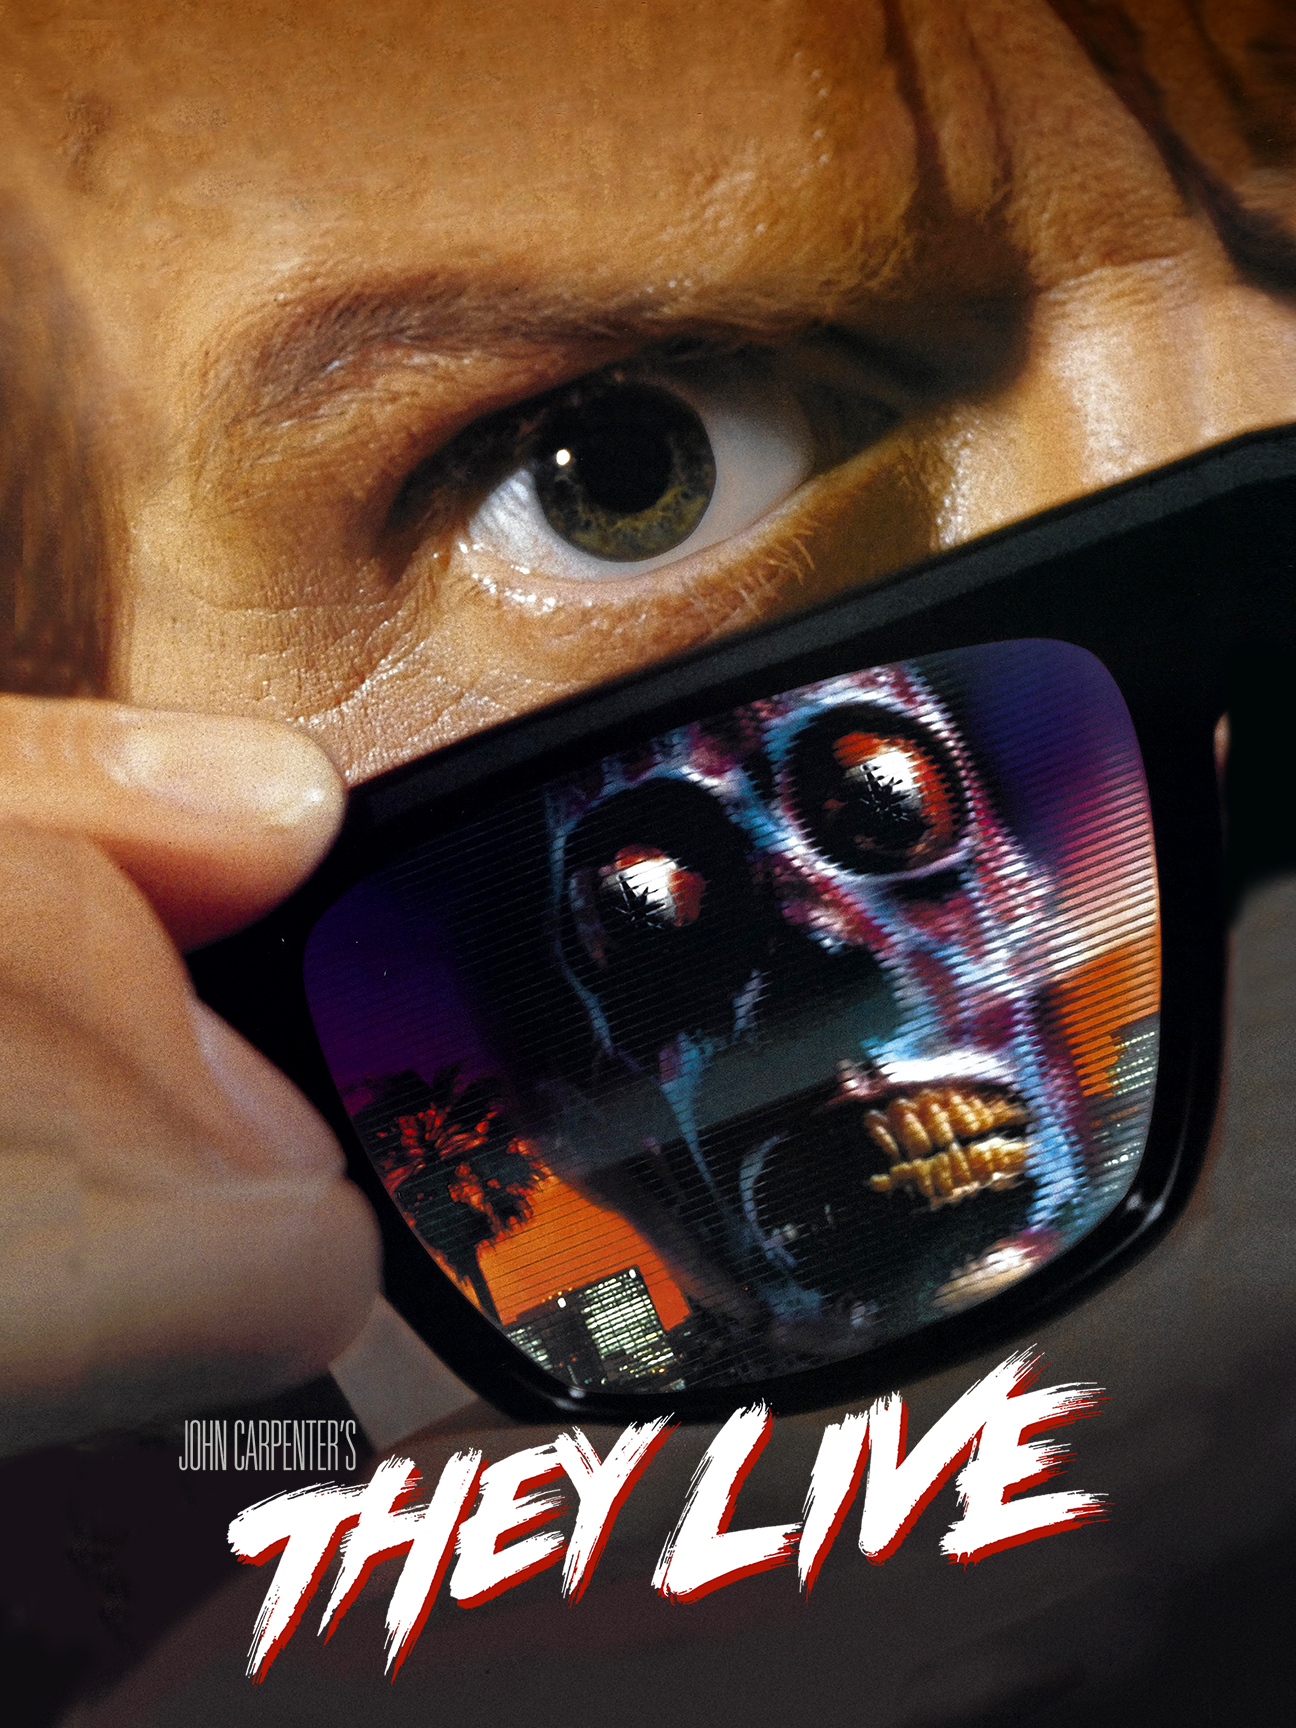 THEY LIVE [Collector's Edition] + Exclusive NECA Action Figure + Poster